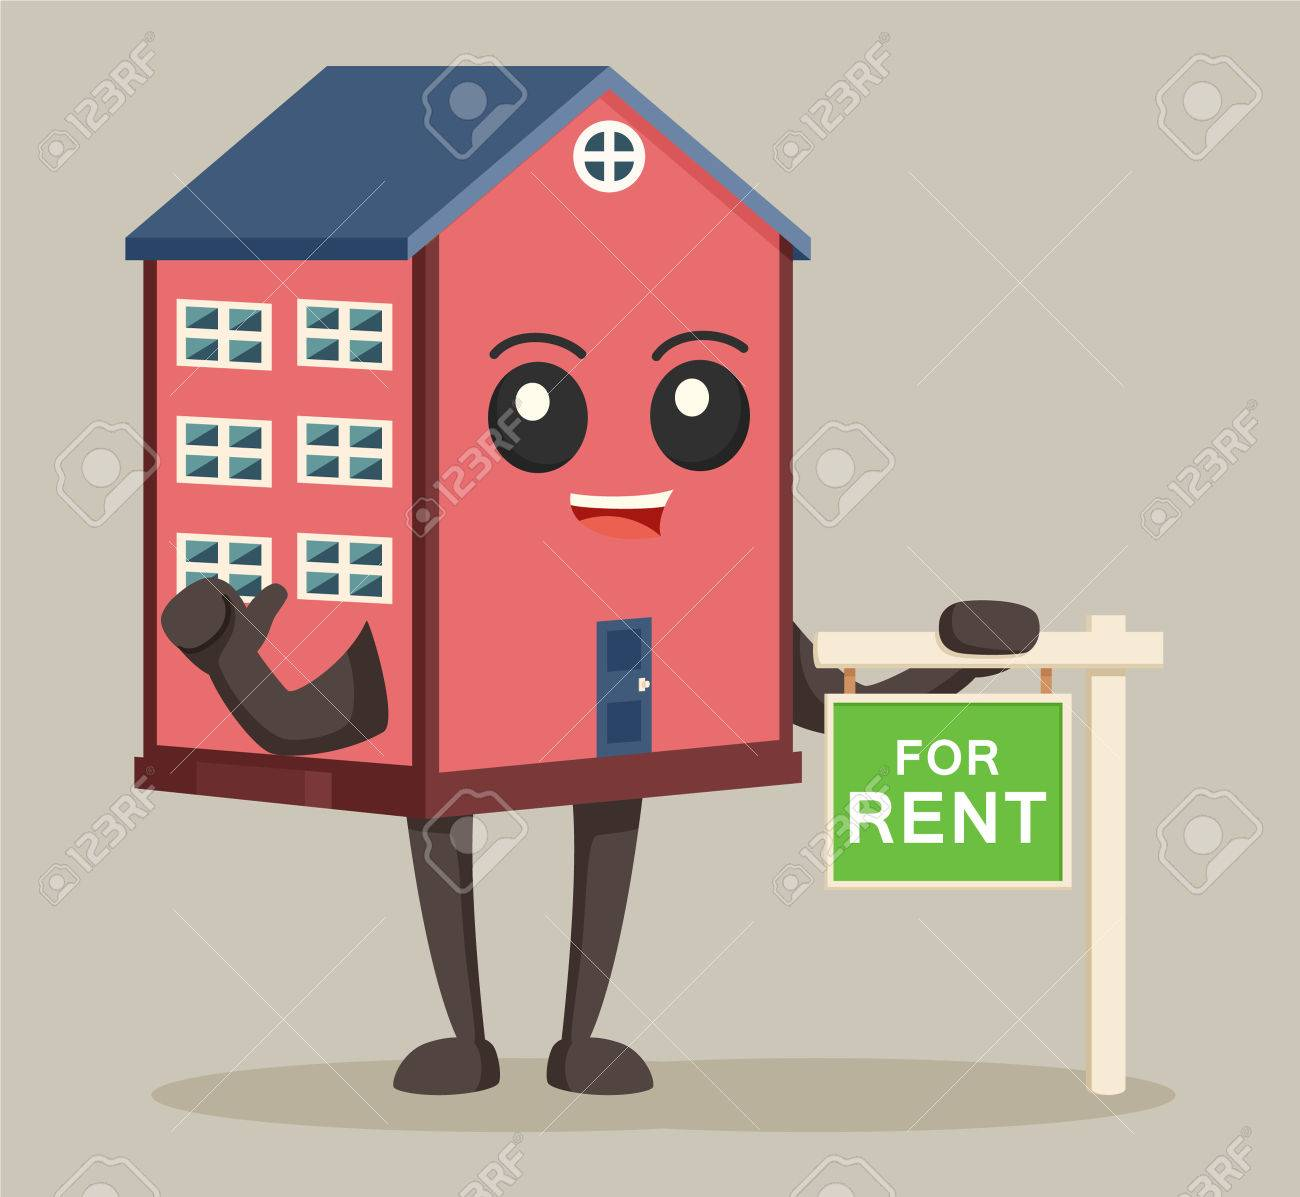 house character with rent sign - 70051213